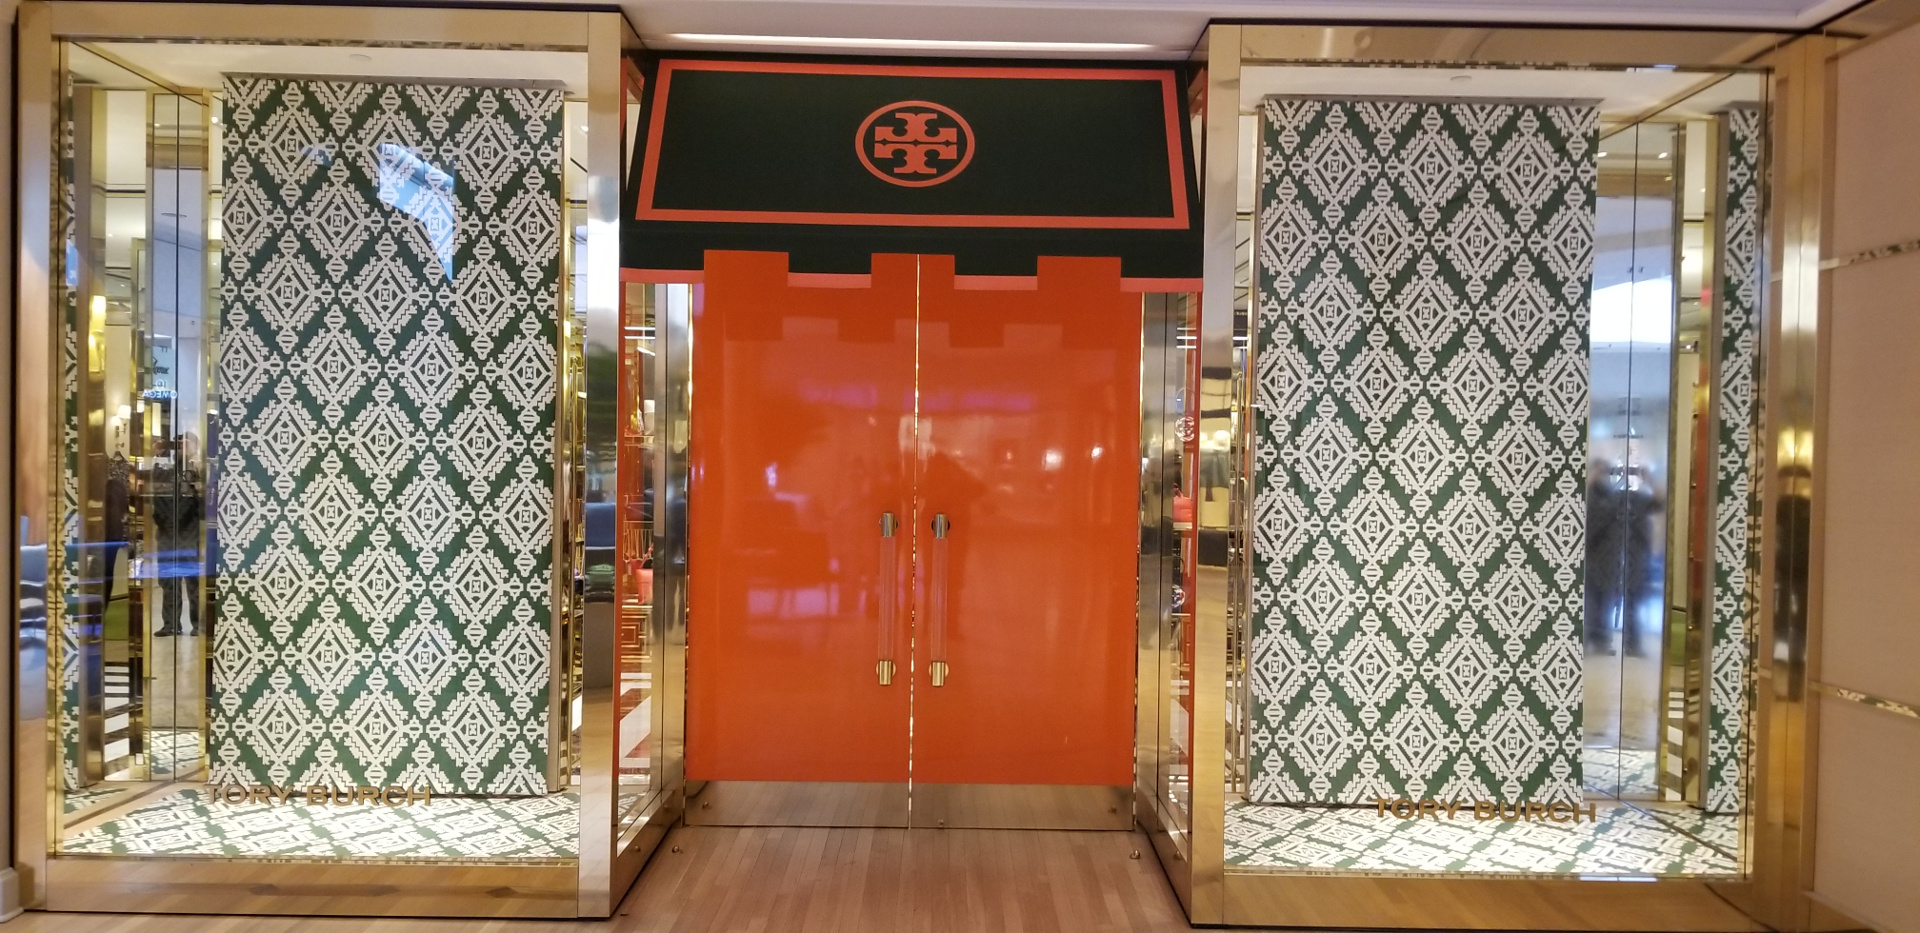 Tory Burch Window Installation on Retail Store